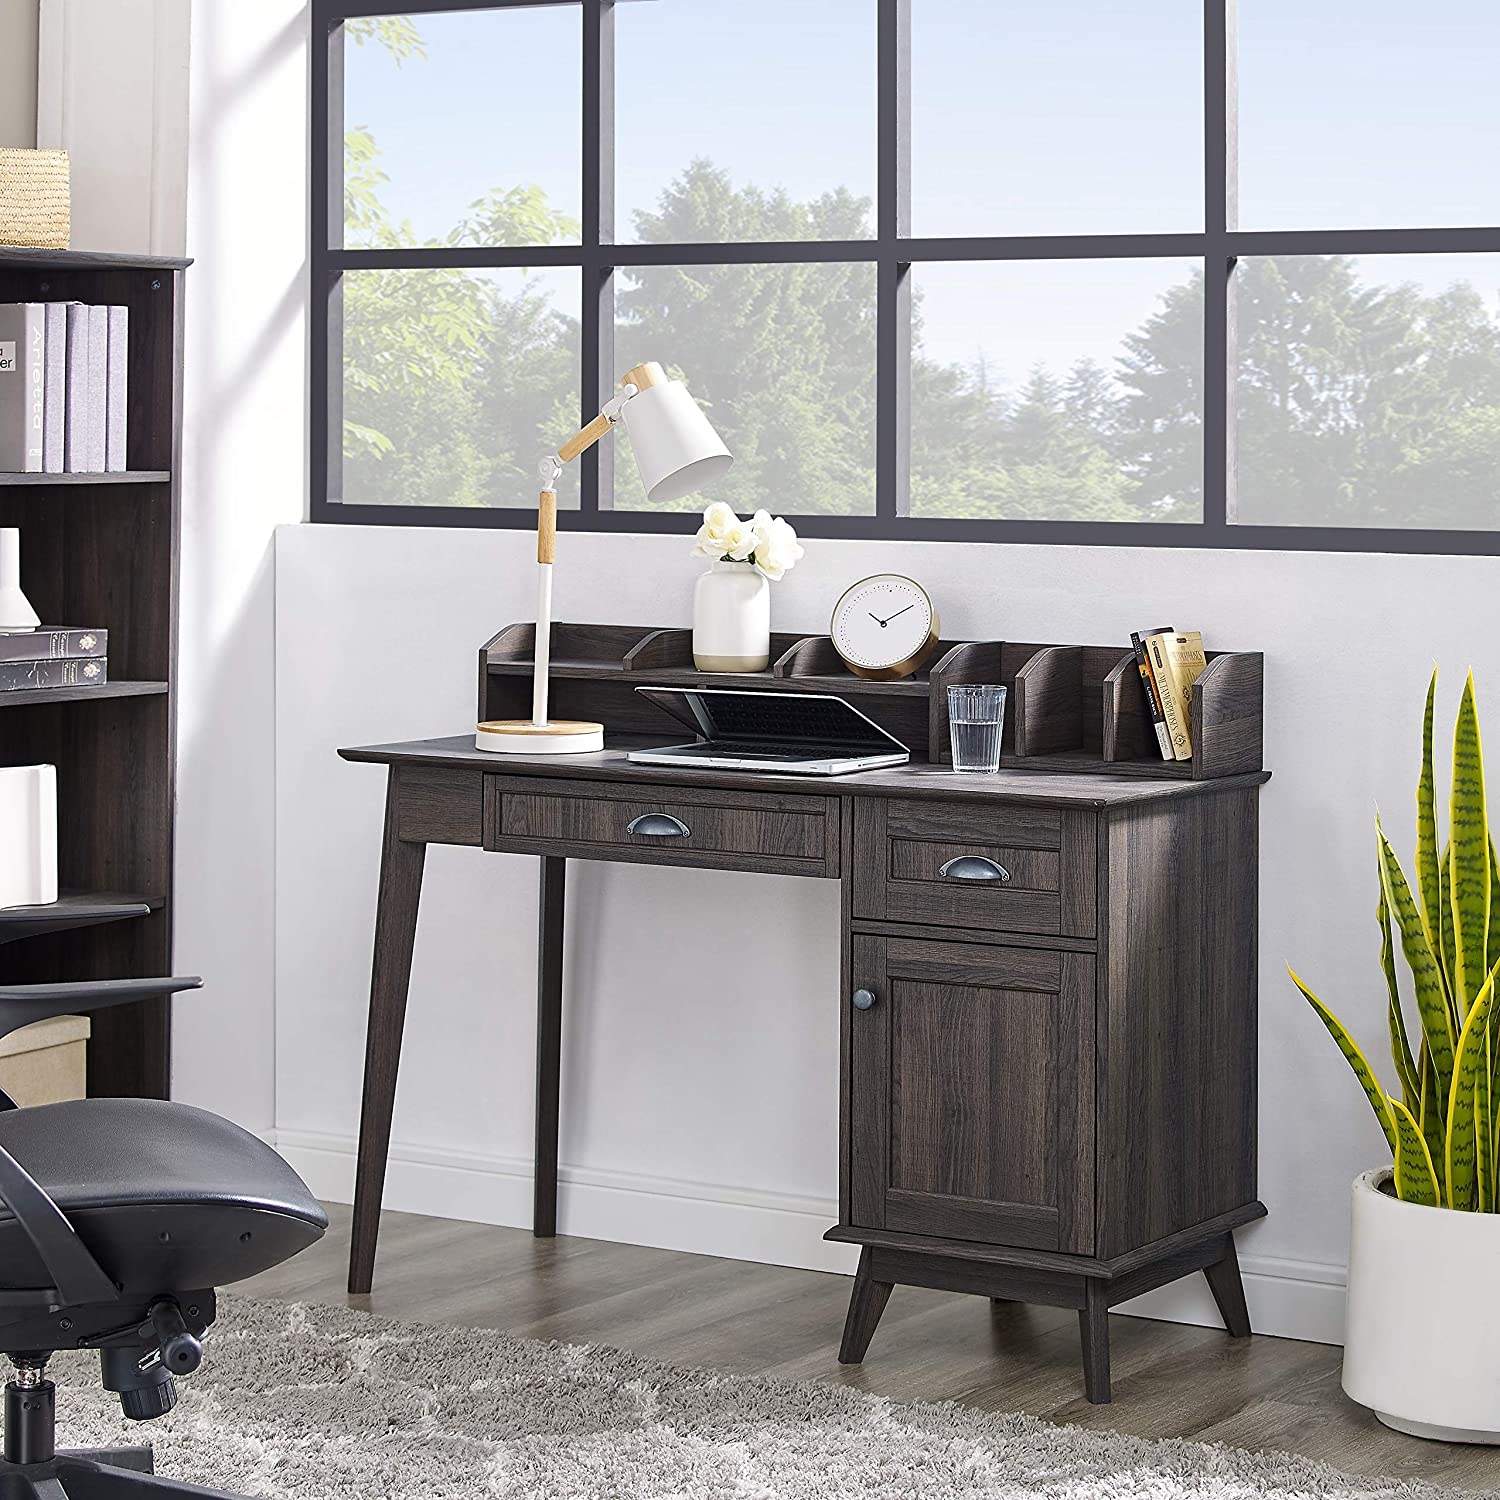 Newport Series Home Office Writing Computer Desk with Hutch Storage  Drawers and Cabinet  Sturdy and Stylish Easy Assembly  Laptop PC  Workstation